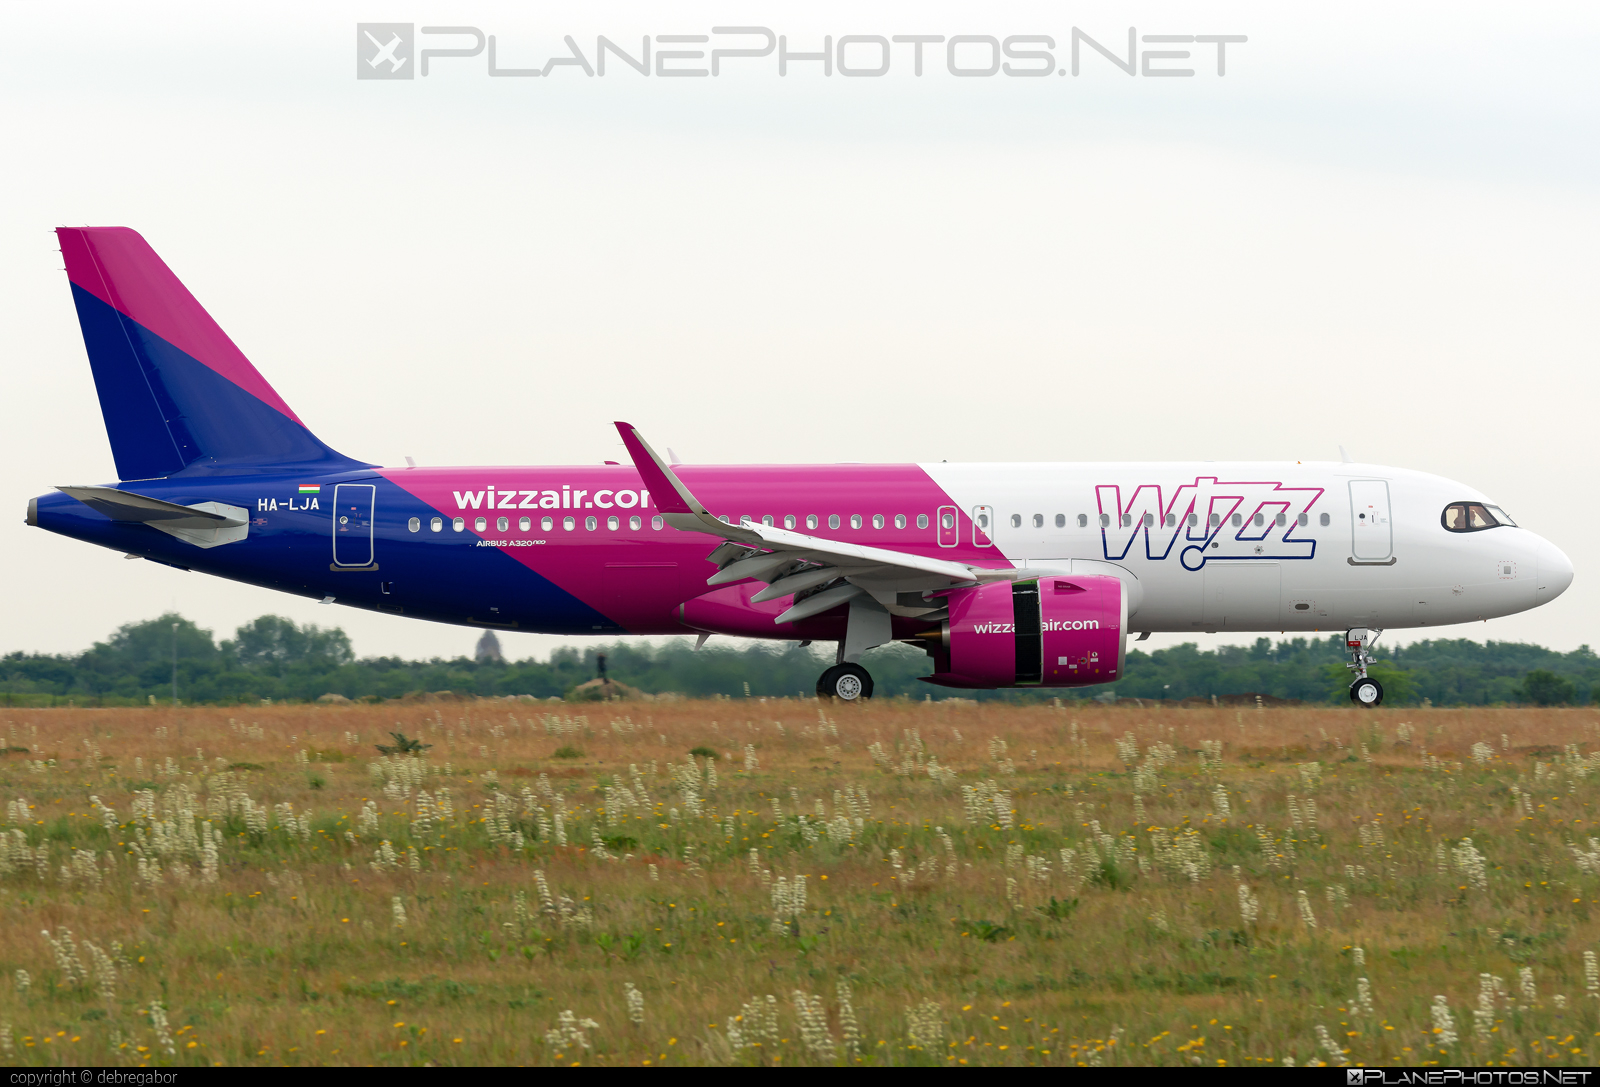 Airbus A320-271N - HA-LJA operated by Wizz Air #a320 #a320family #a320neo #airbus #airbus320 #wizz #wizzair